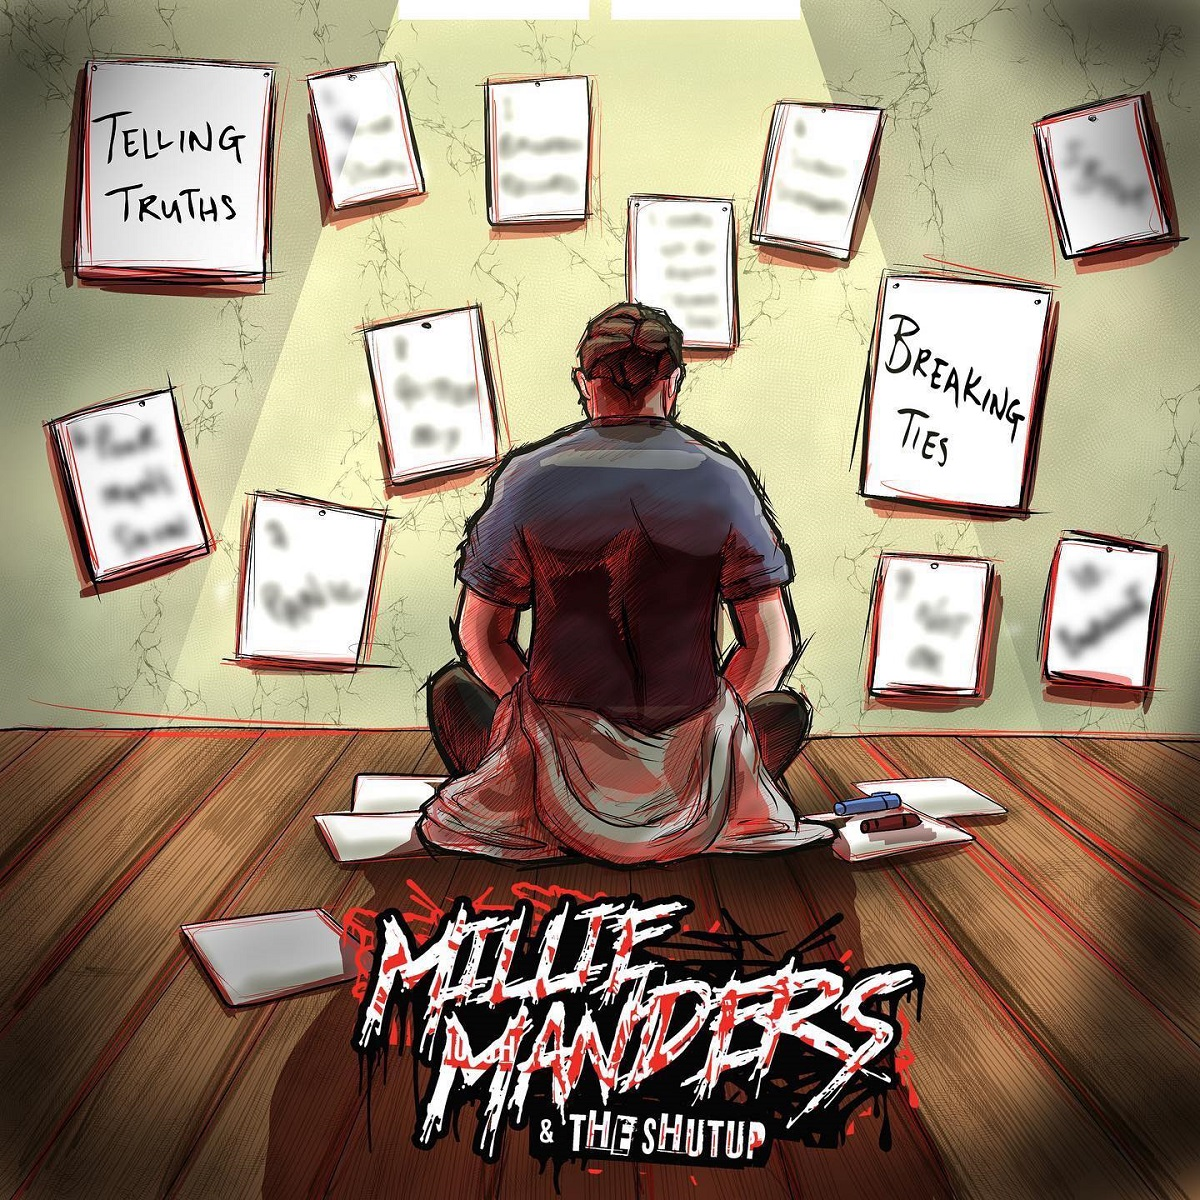 Review: Millie Manders And The Shutup – Telling Truths, Breaking Ties